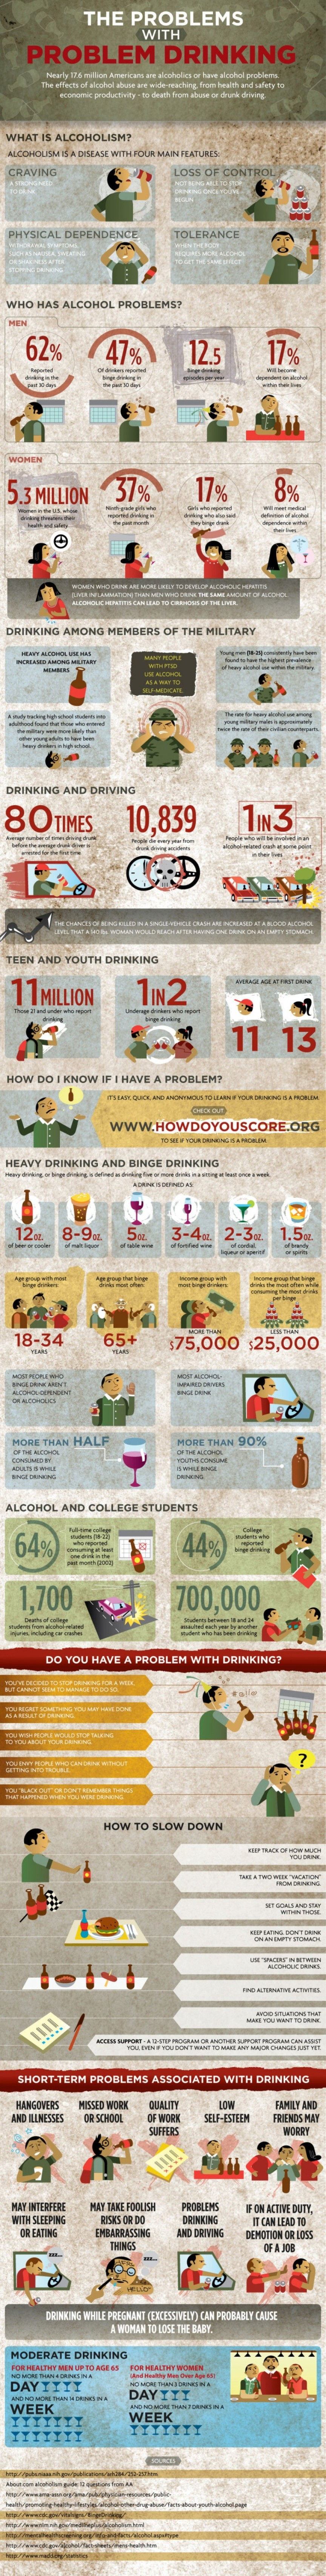 Alcohol abuse facts screening mental health